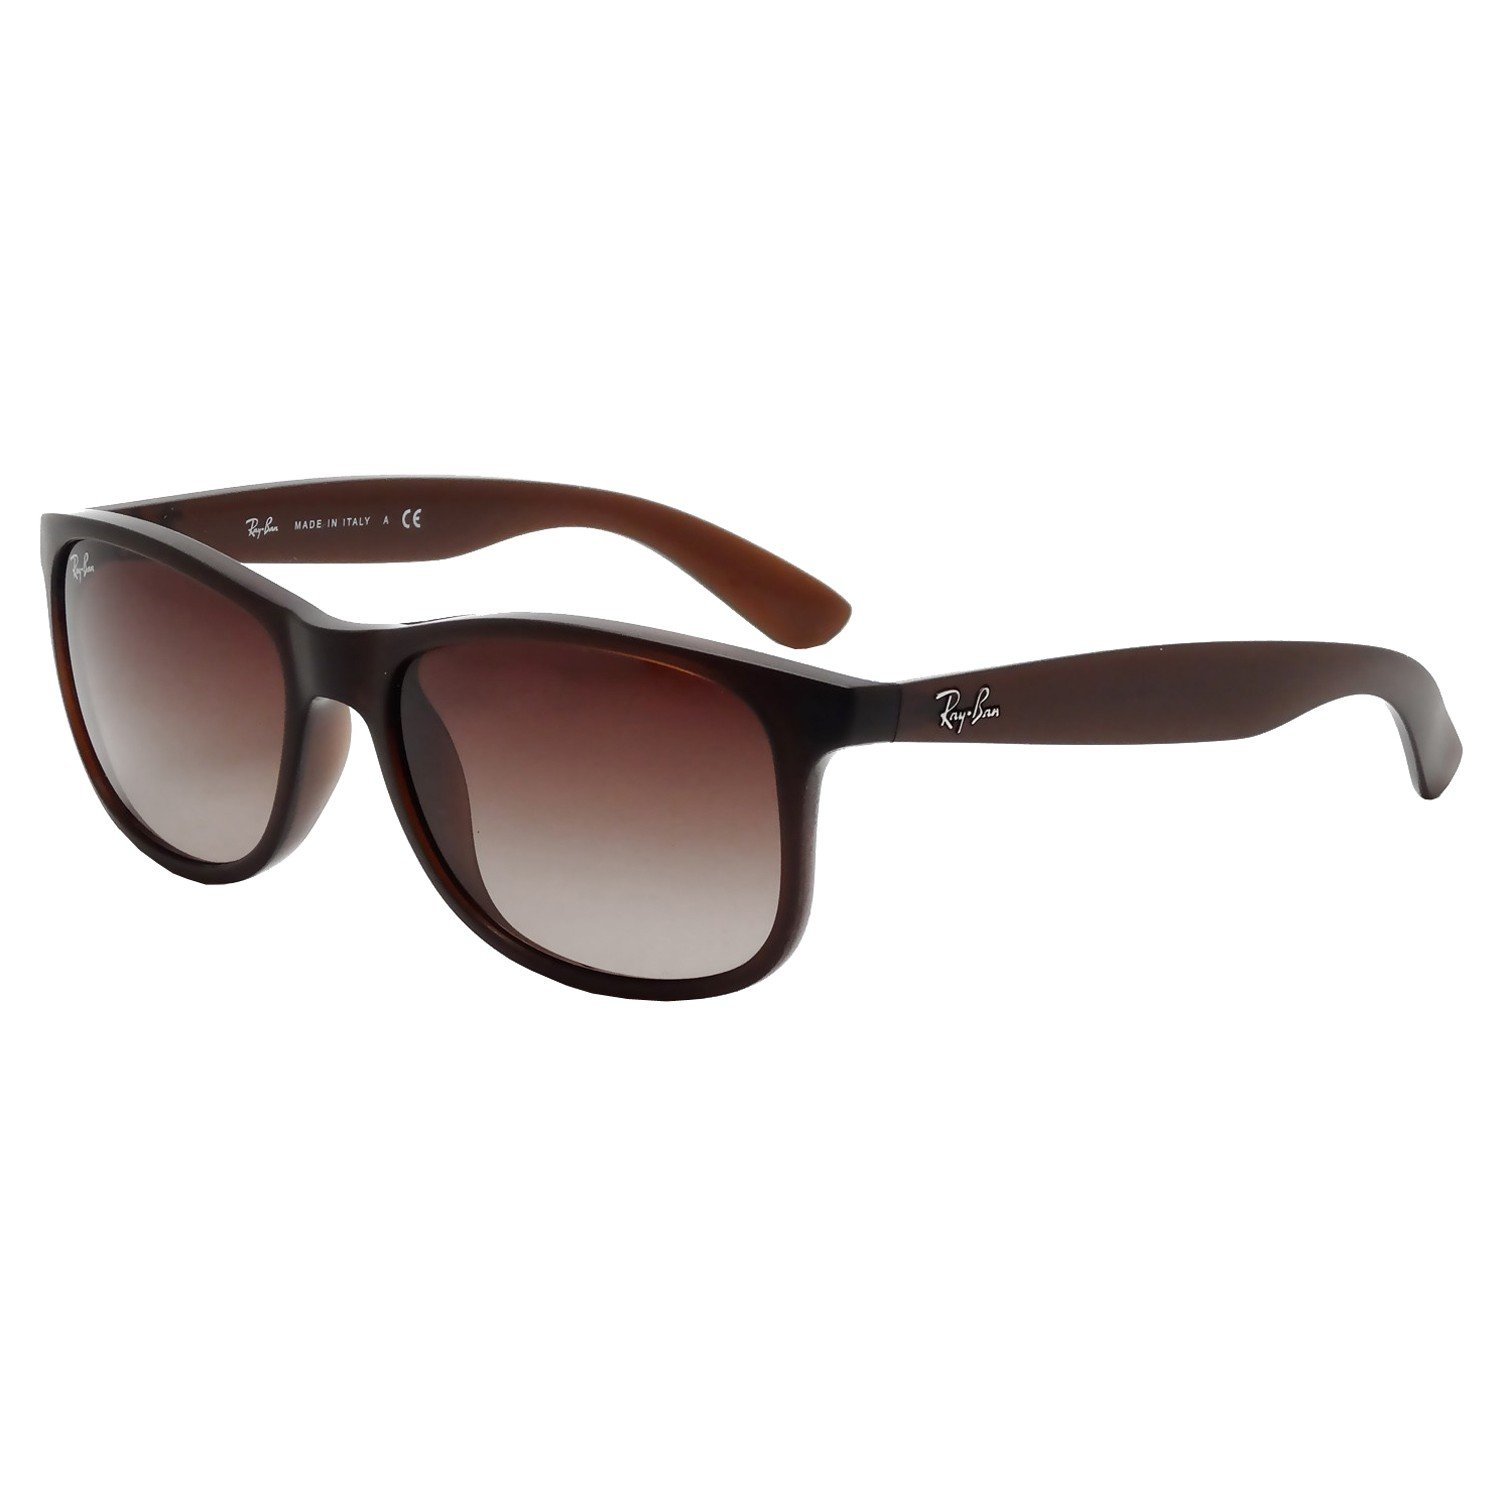 bb6df20e45 Amazon.com  Ray-Ban s Authentic Andy Men s Sunglasses RB4202 Shinny Brown  Frame   Brown Gradient Lenses (6073 13) RB4202 6073 13 55mm  Clothing